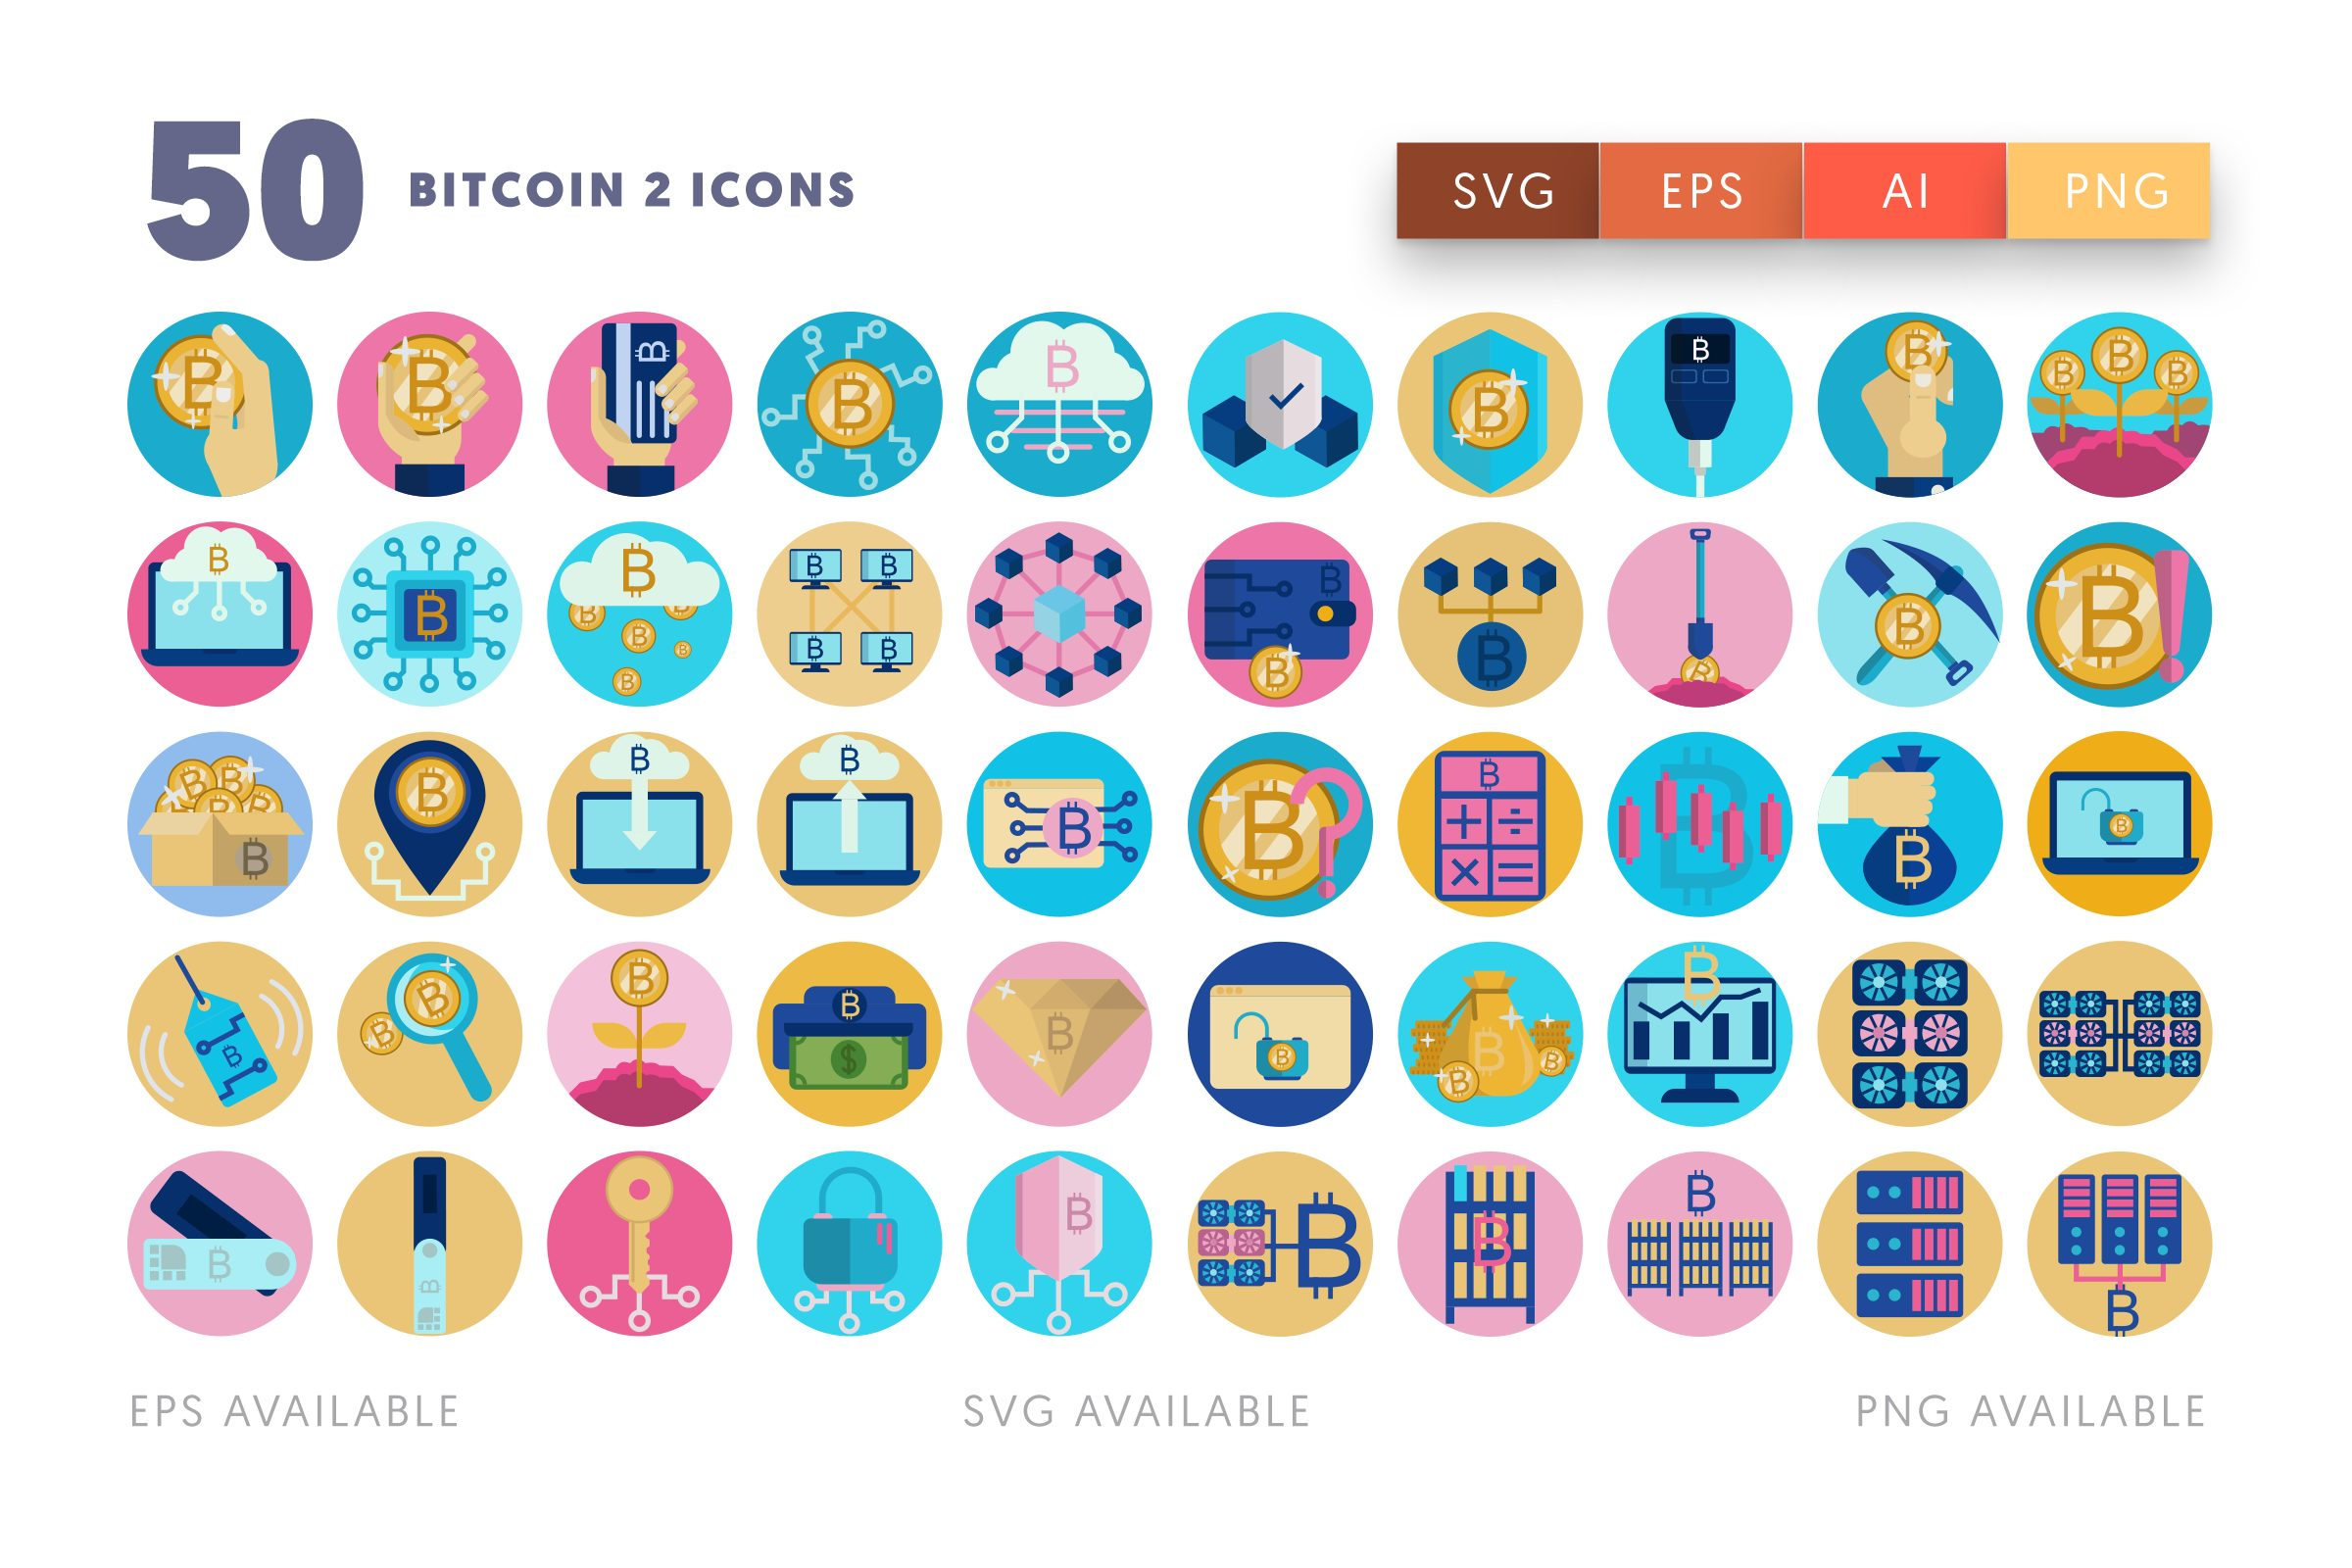 Bitcoin 2 icons png/svg/eps